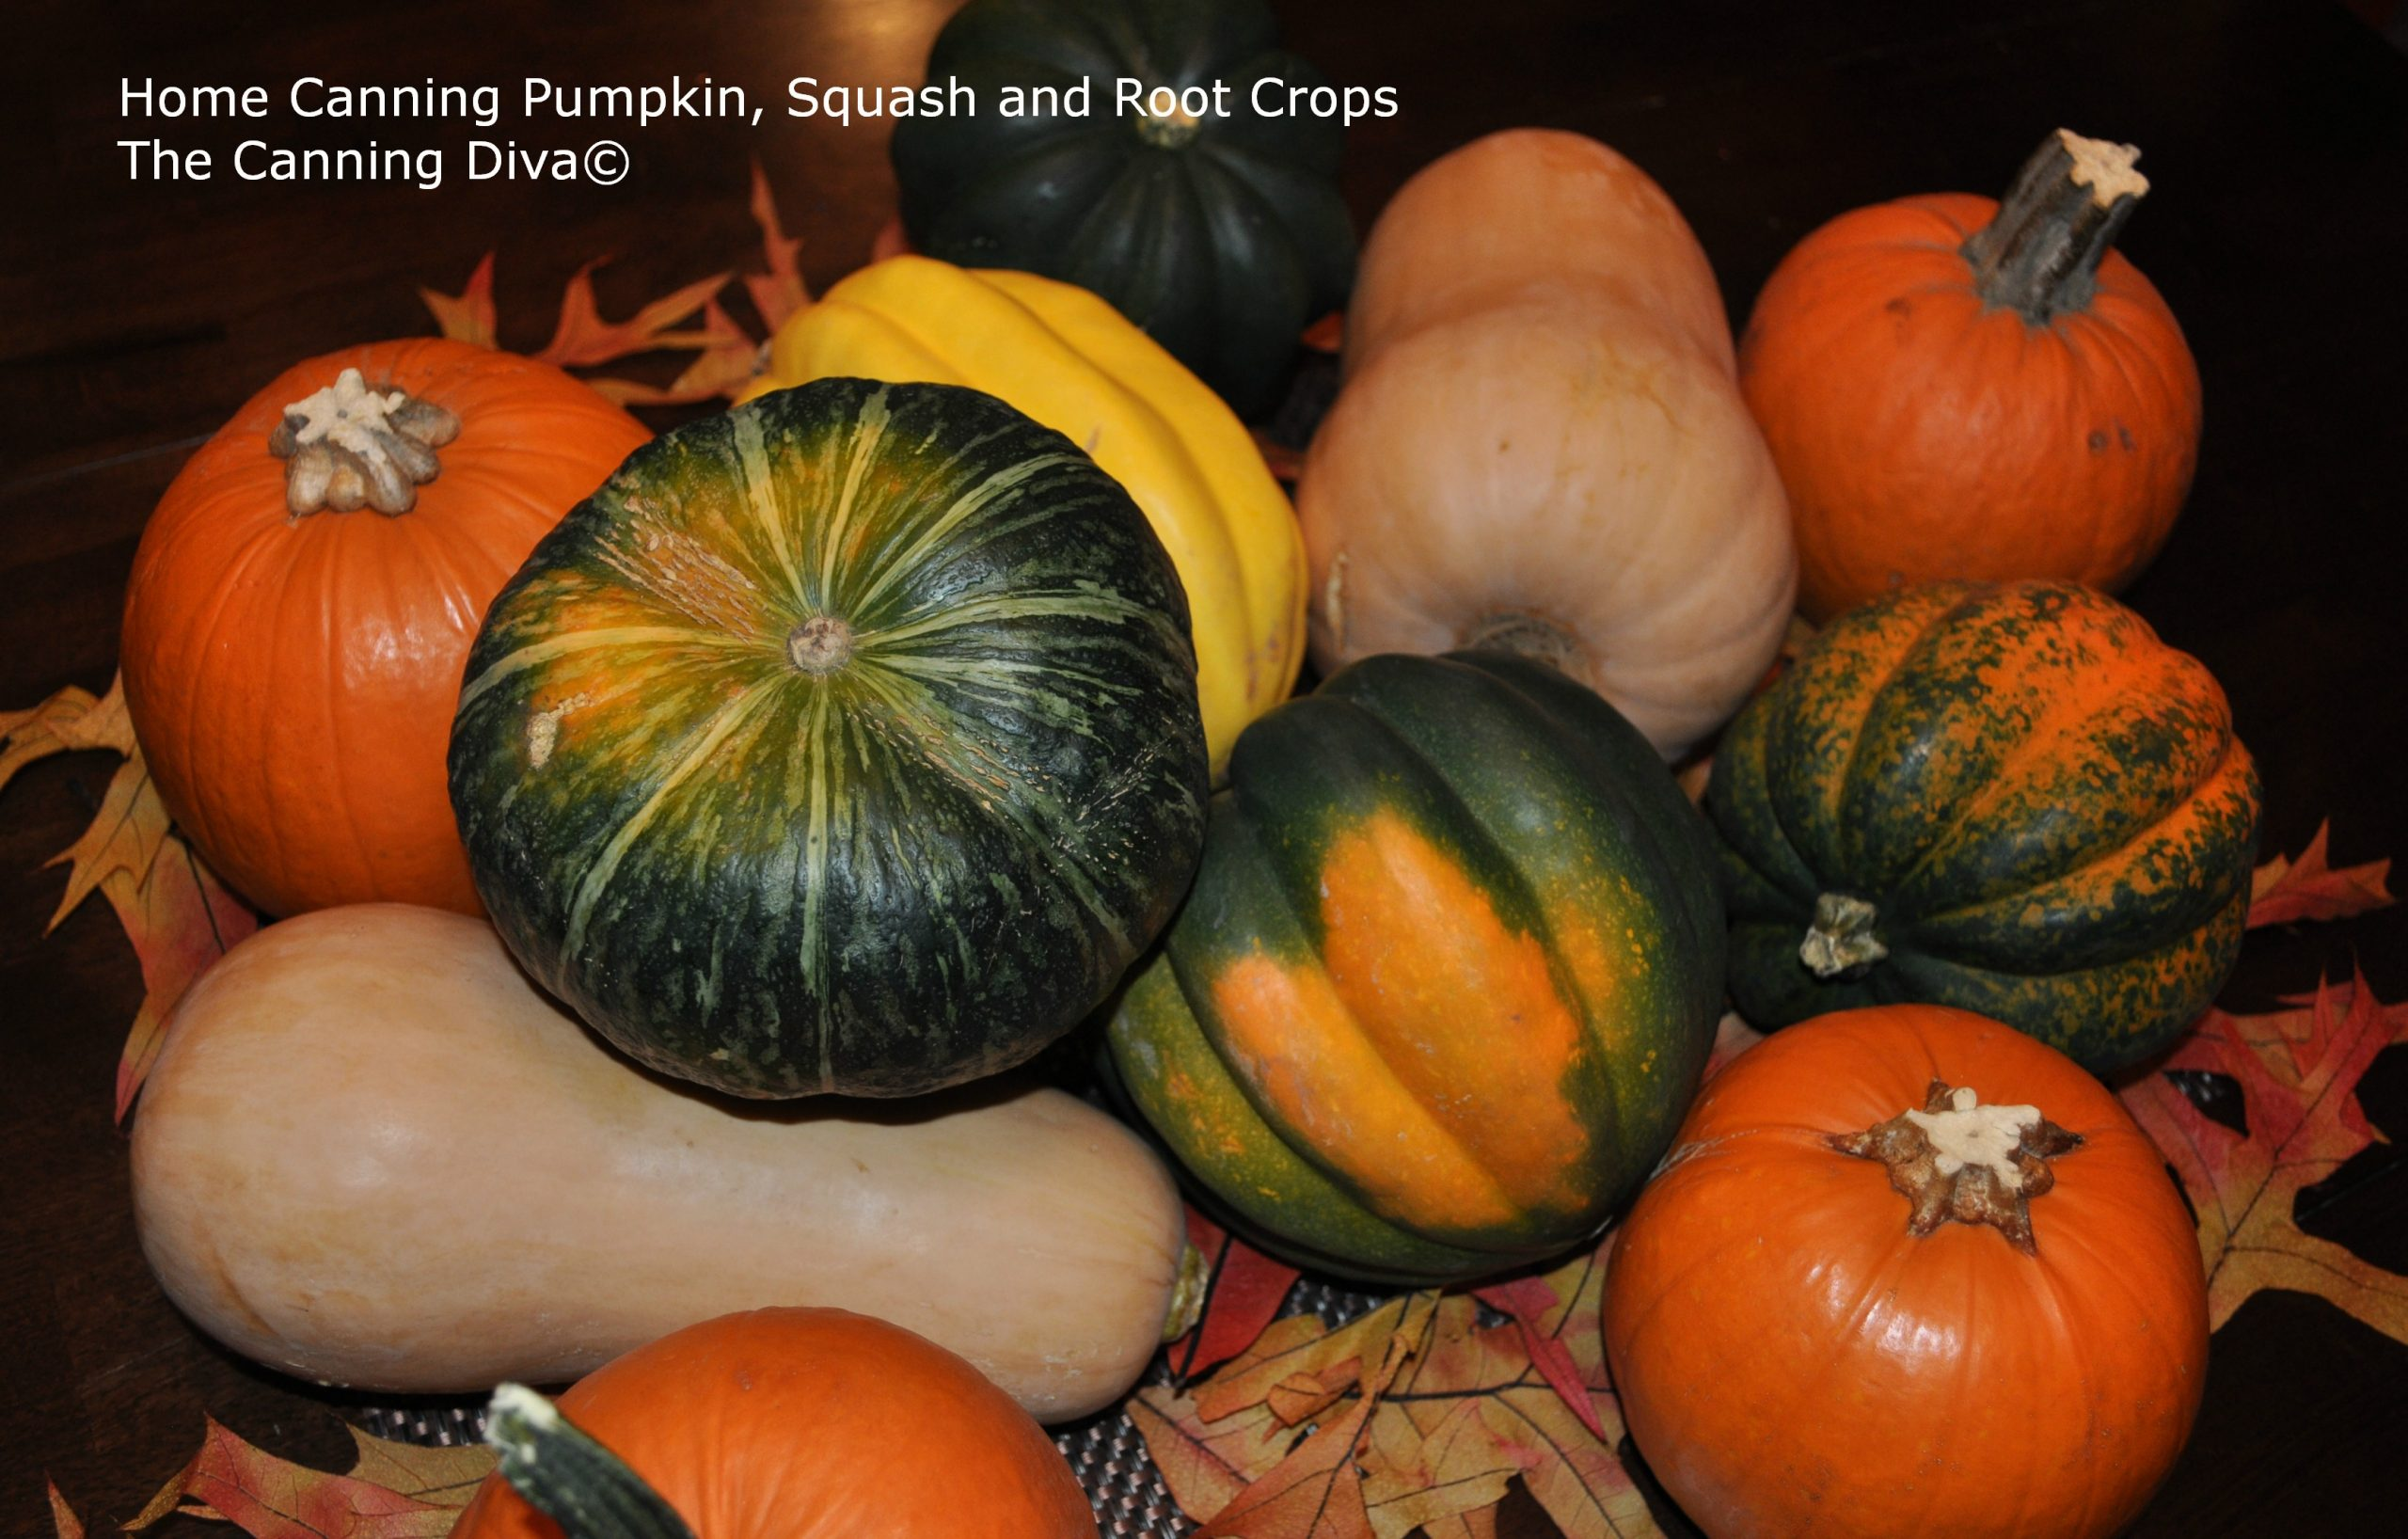 Home Canning Pumpkin Squash and Root Crops